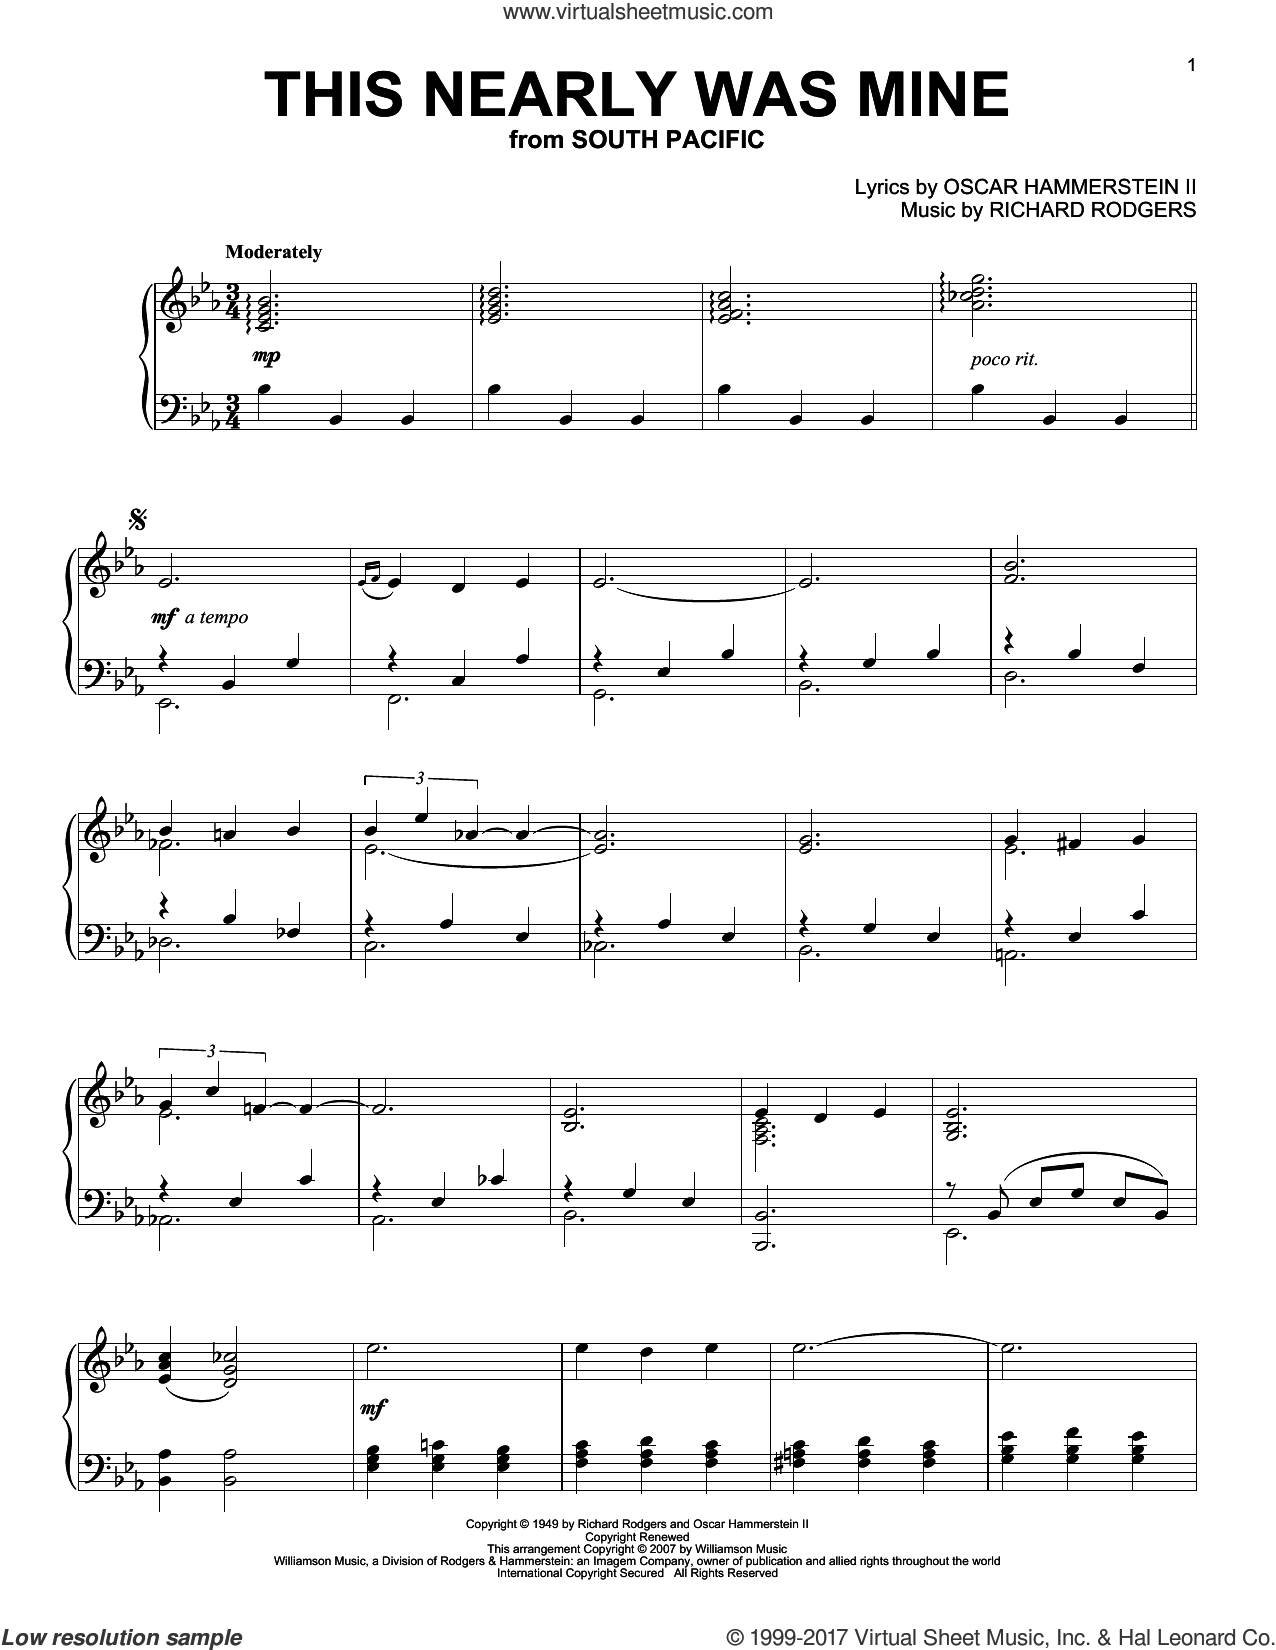 This Nearly Was Mine sheet music for piano solo by Richard Rodgers and Oscar II Hammerstein, intermediate skill level